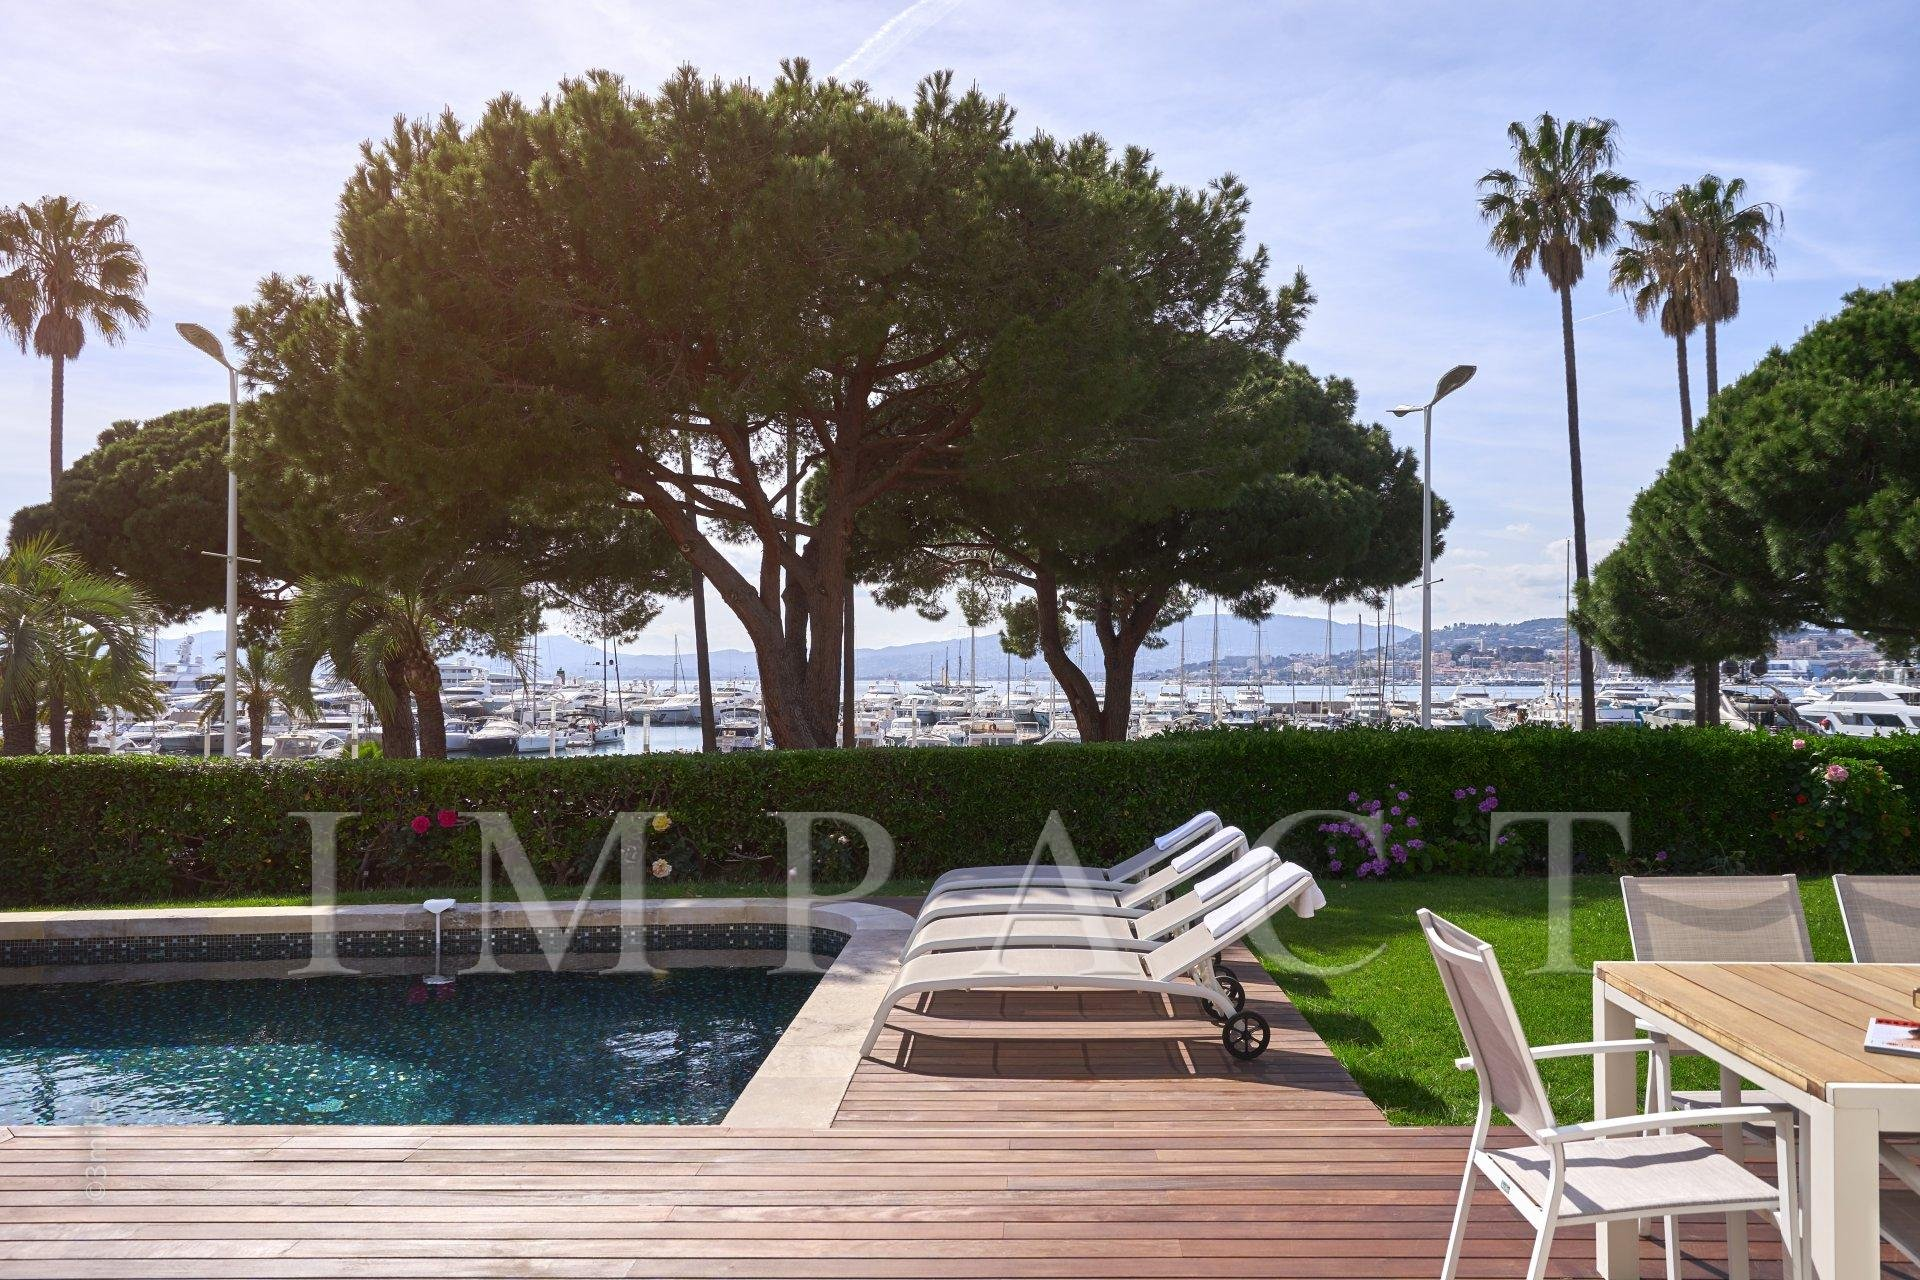 Renovated villa to rent of 350sqm located on the Croisette, Cannes